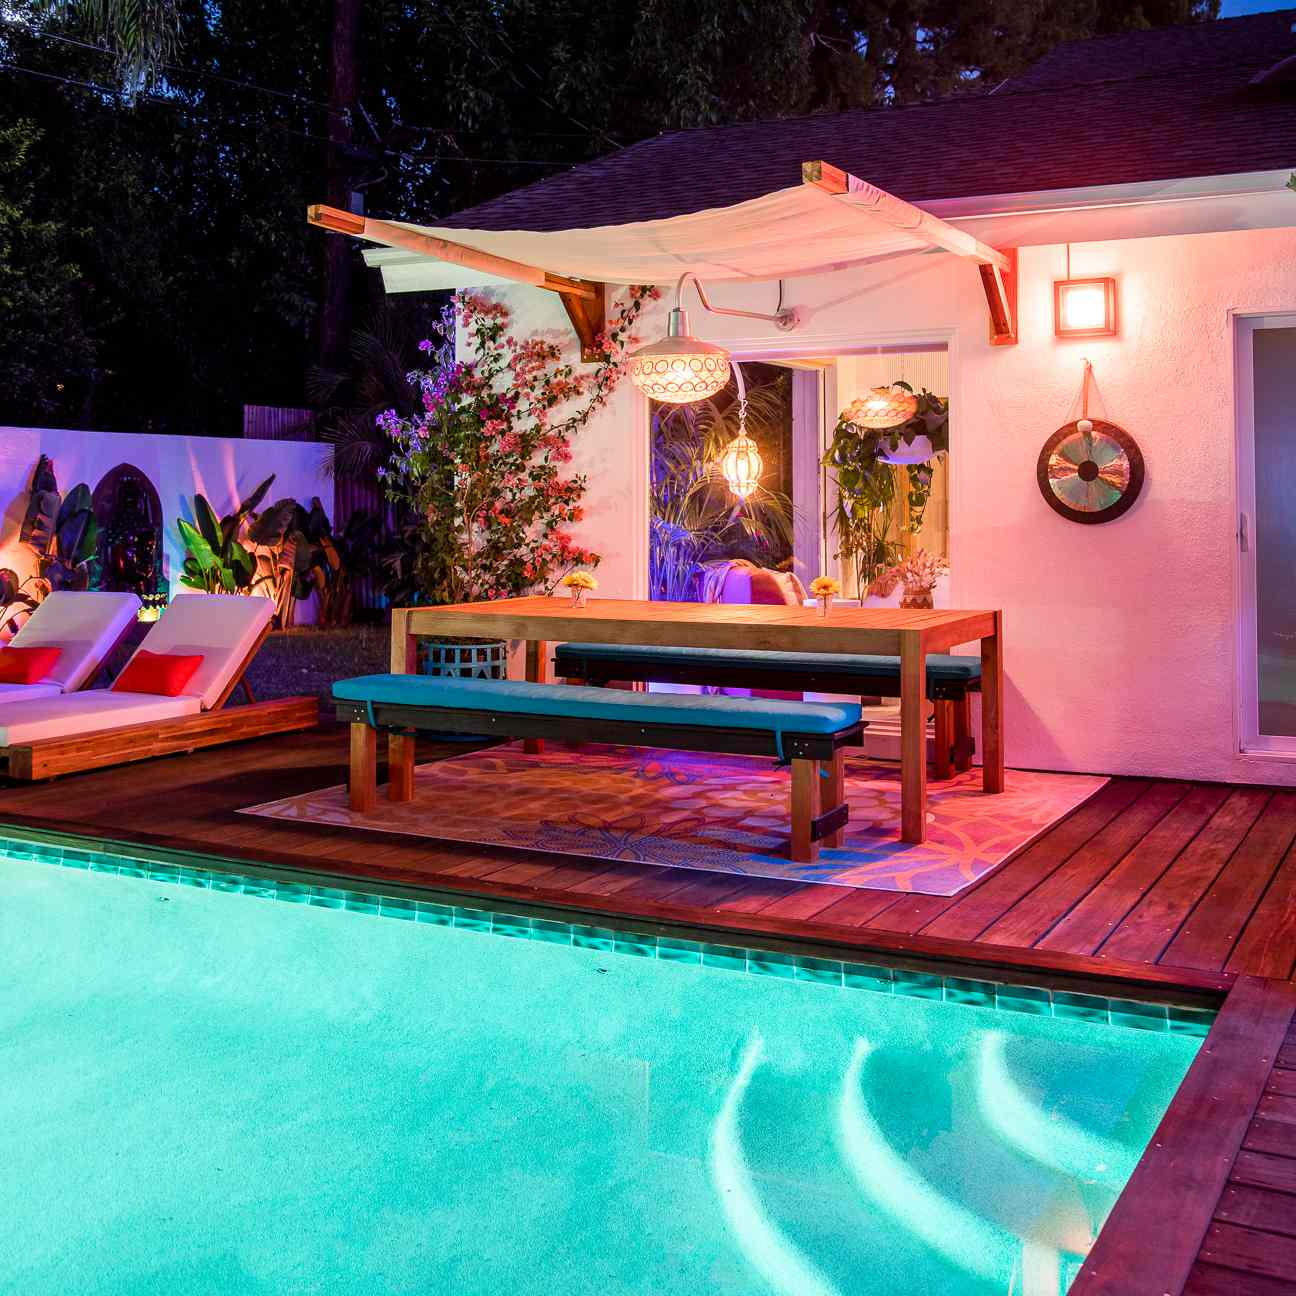 Nightime shot of pool and outdoor dining area